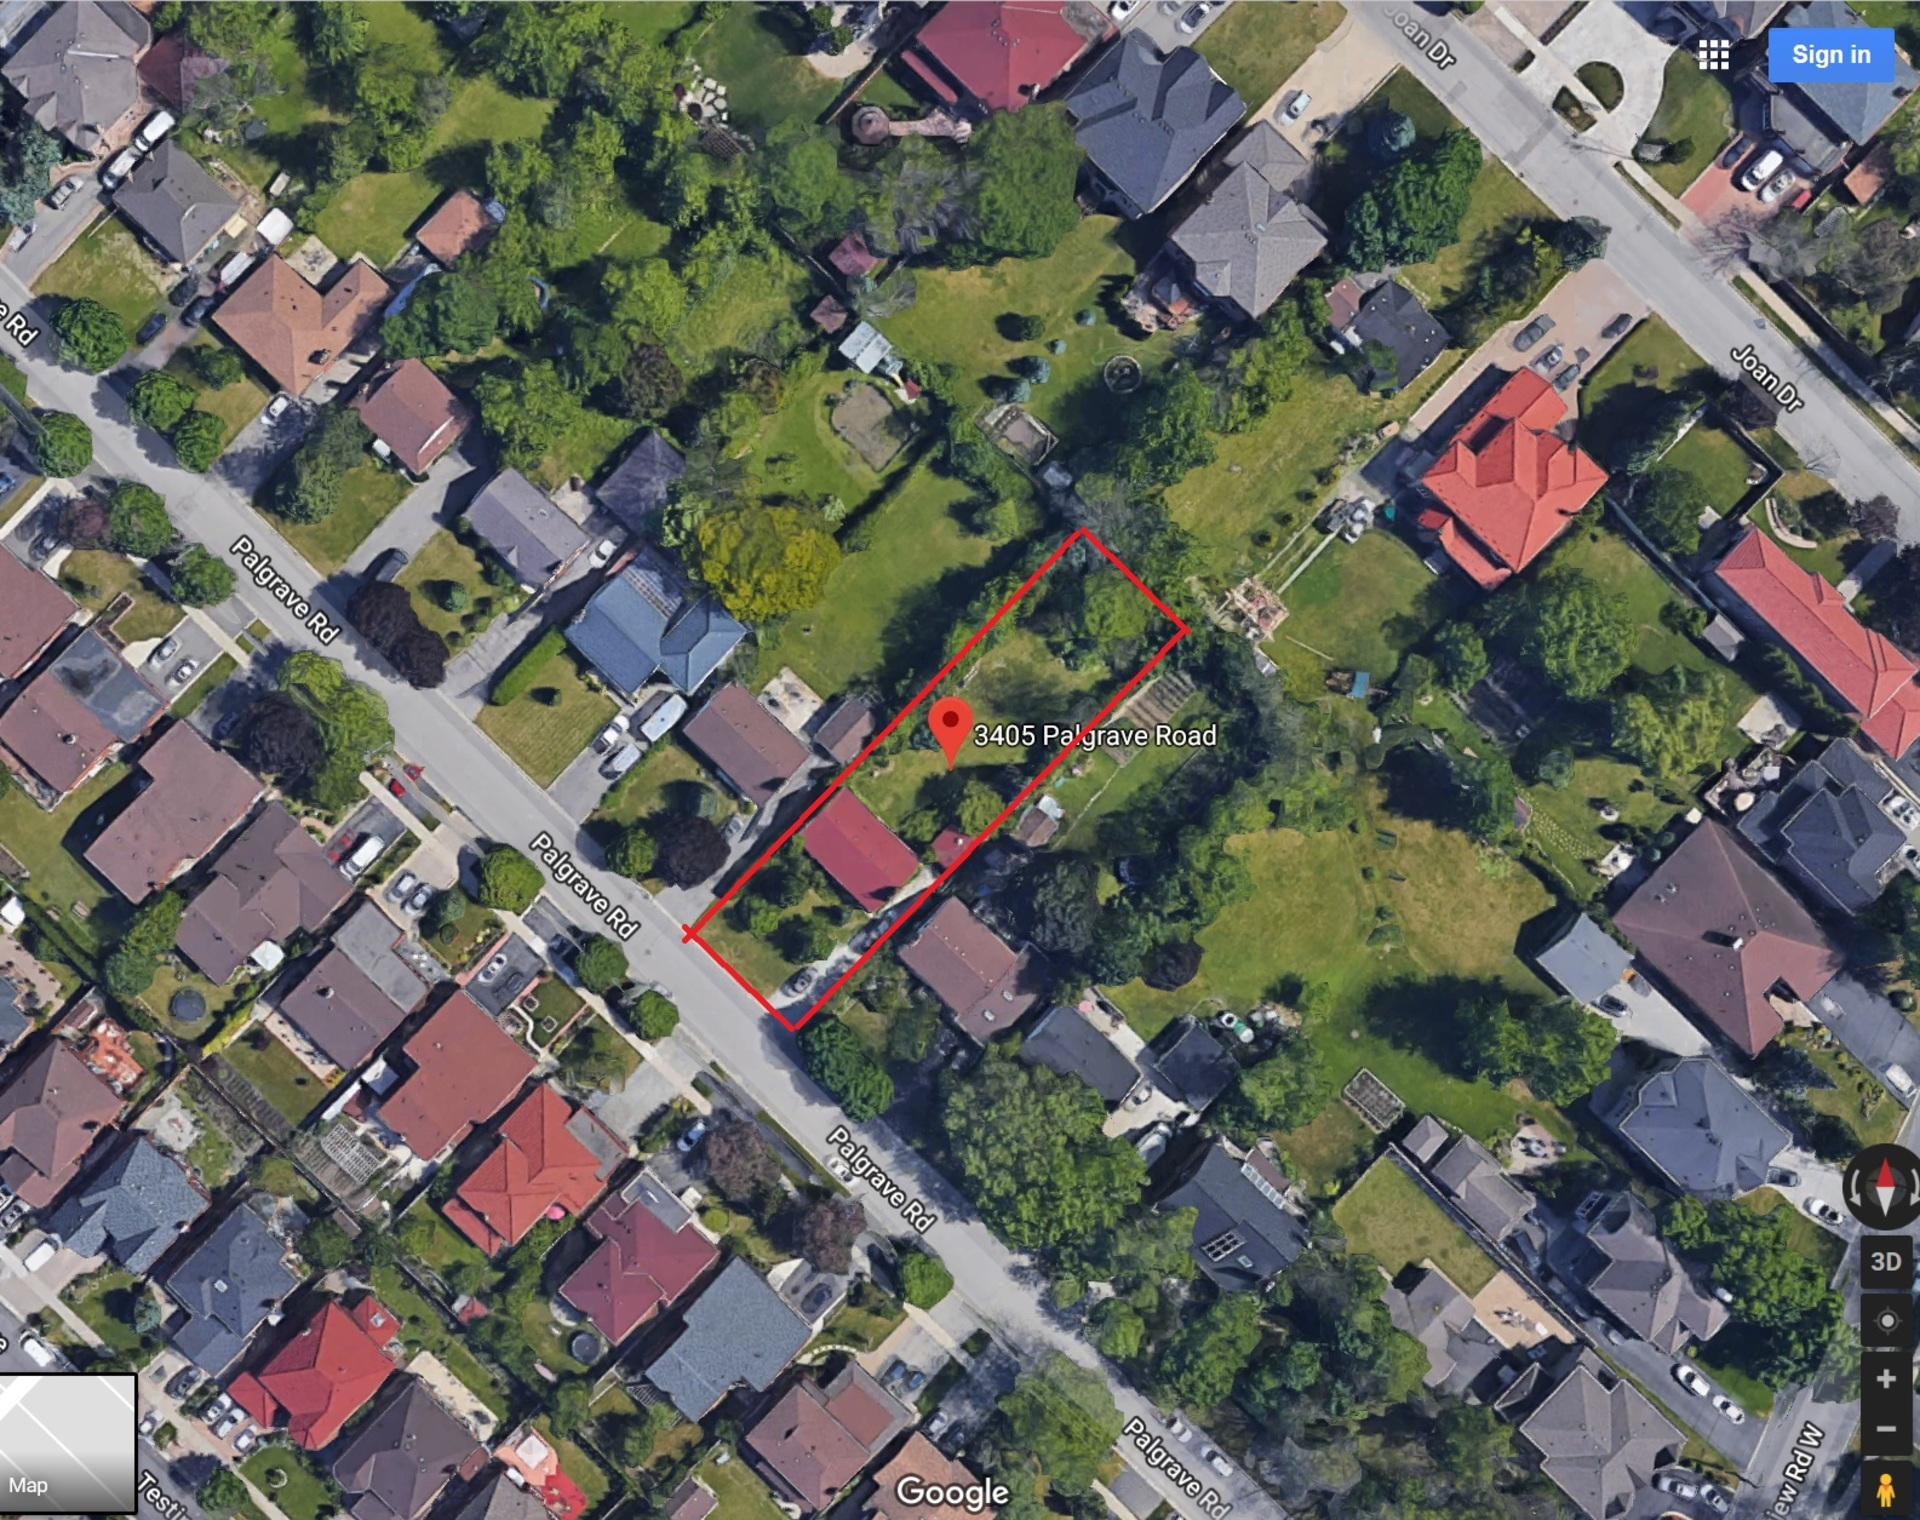 mls-pic-1-3405-palgrave-rd-lot-boundary-1 at 3405 Palgrave Road, Fairview, Mississauga